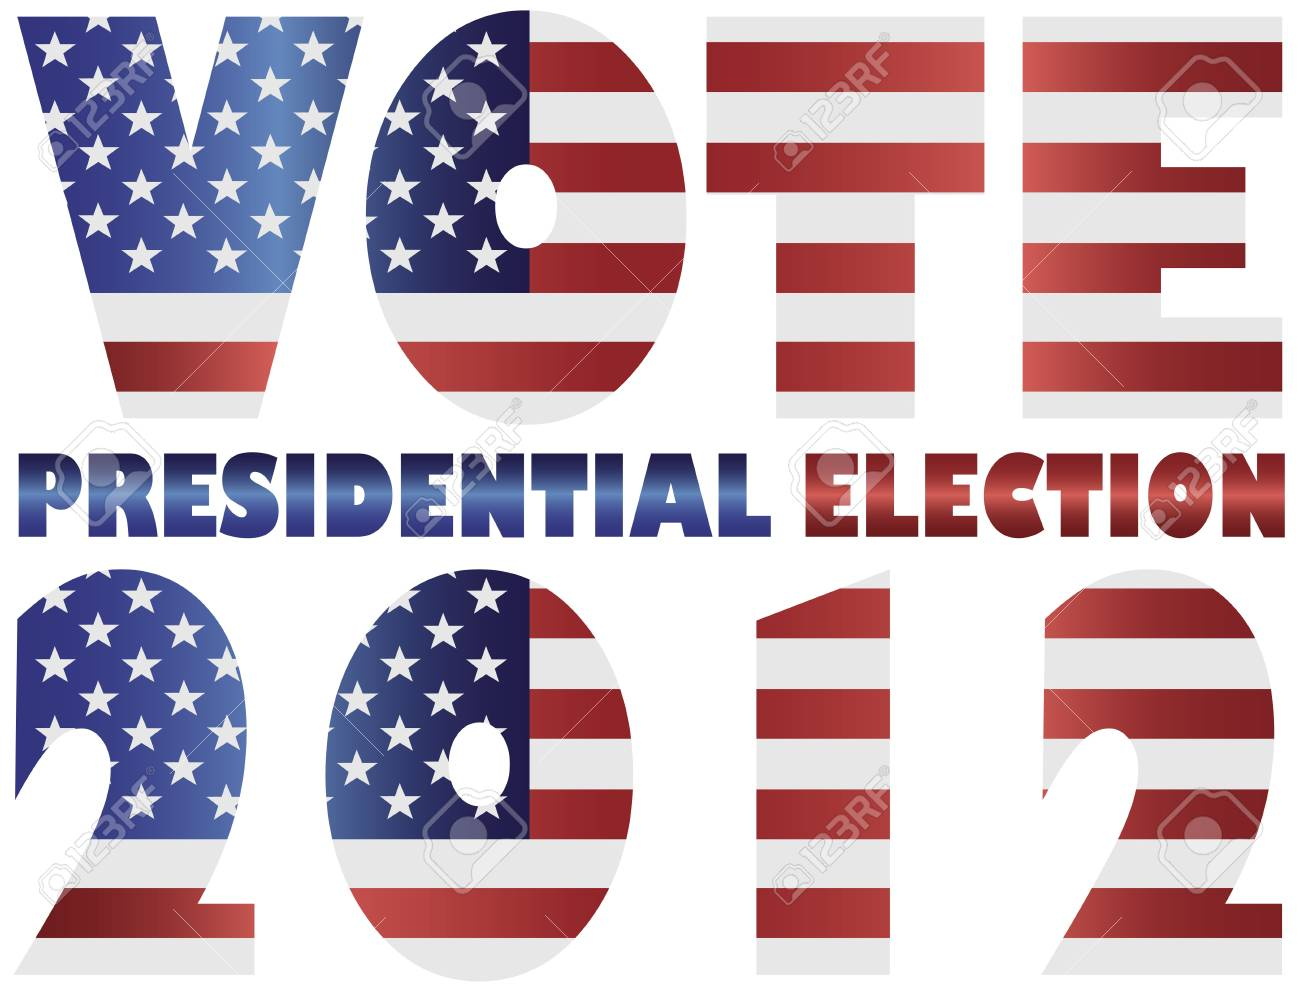 Vote 2012 Presidential Election with American USA Flag Silhouette Illustration Stock Vector - 15035877